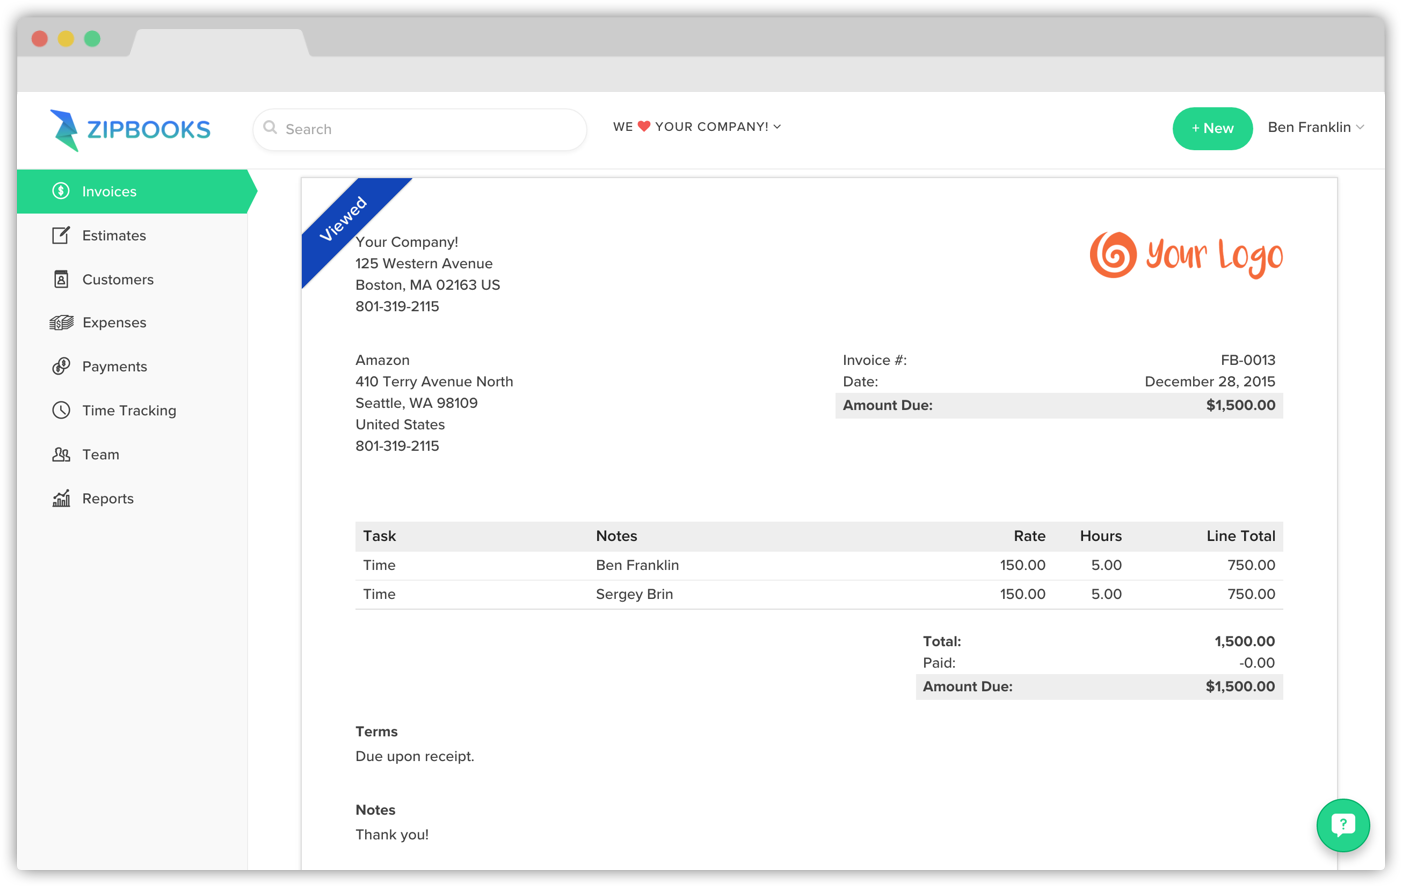 Amatospizzaus  Pretty Can I Remove The Tax Column On An Invoice  Zipbooks With Outstanding Can I Remove The Tax Column On An Invoice With Enchanting Invoice Apps For Android Also Invoice Templates Doc In Addition Invoice Tamplet And Pi Purchase Invoice As Well As Create Tax Invoice Additionally Dealer Invoice Price For Cars From Zipbookscom With Amatospizzaus  Outstanding Can I Remove The Tax Column On An Invoice  Zipbooks With Enchanting Can I Remove The Tax Column On An Invoice And Pretty Invoice Apps For Android Also Invoice Templates Doc In Addition Invoice Tamplet From Zipbookscom